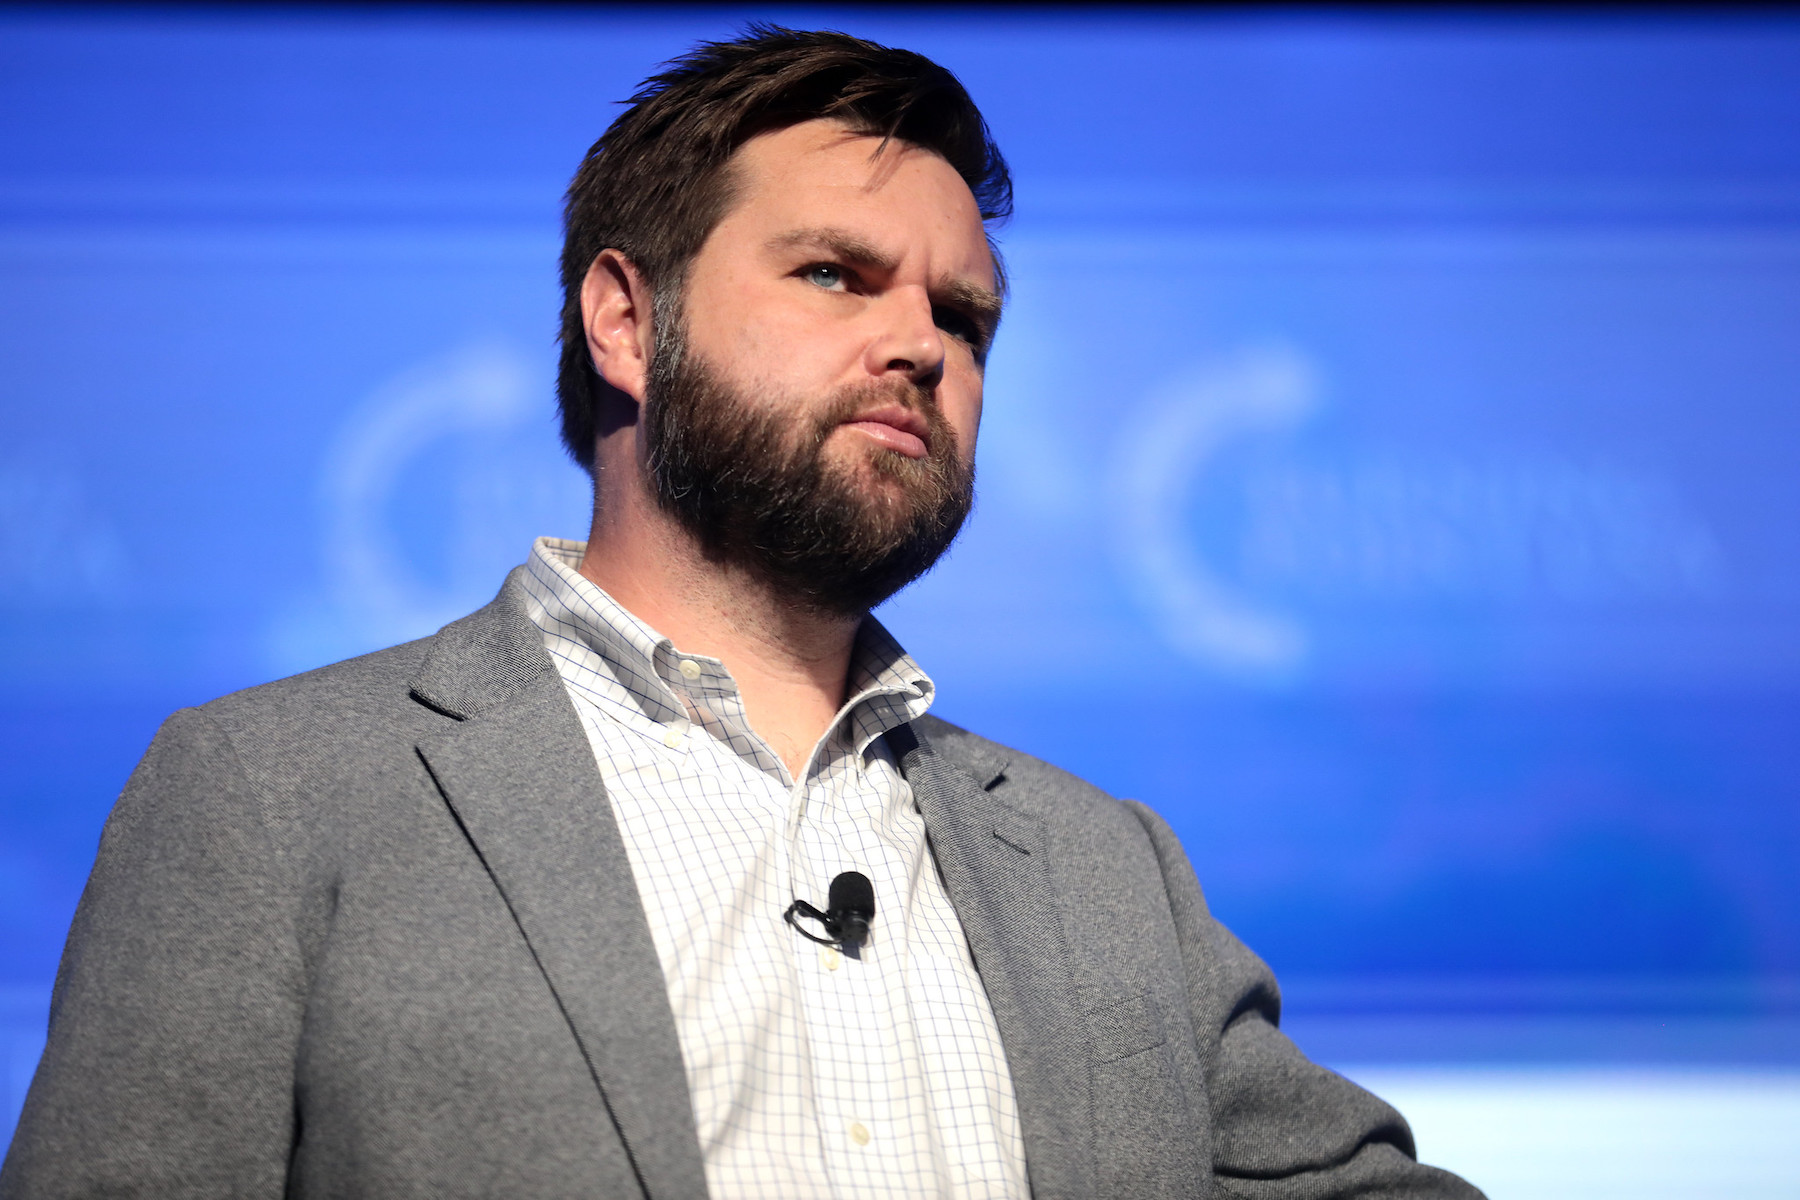 J.D. Vance speaking at the 2021 Southwest Regional Conference hosted by Turning Point USA